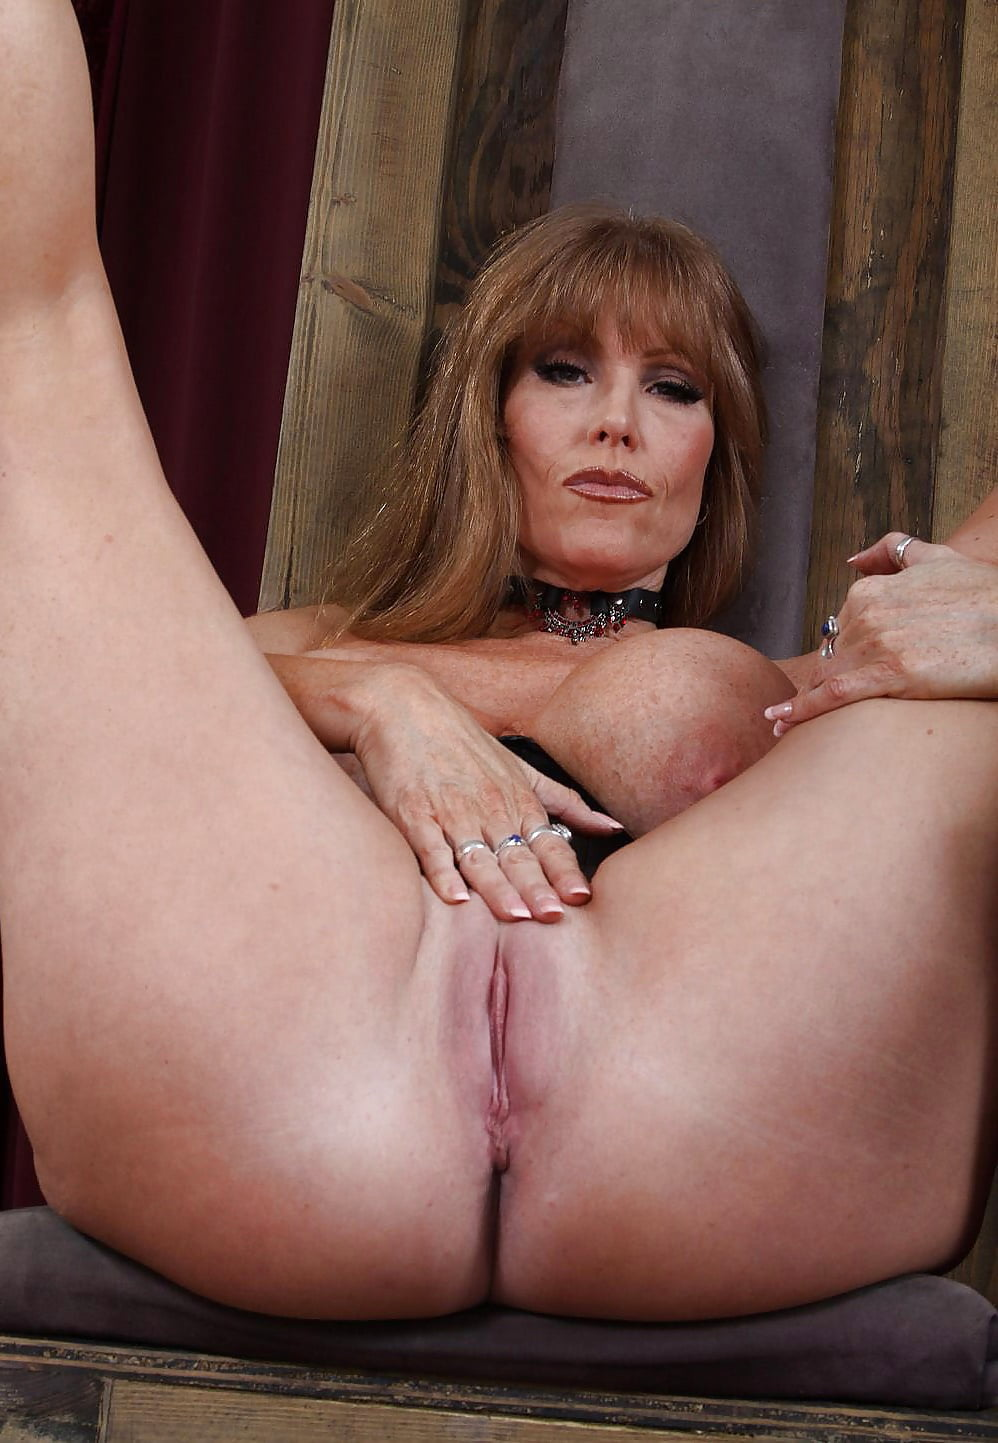 darla-crane-ass-pics-brittany-spears-nude-pictures